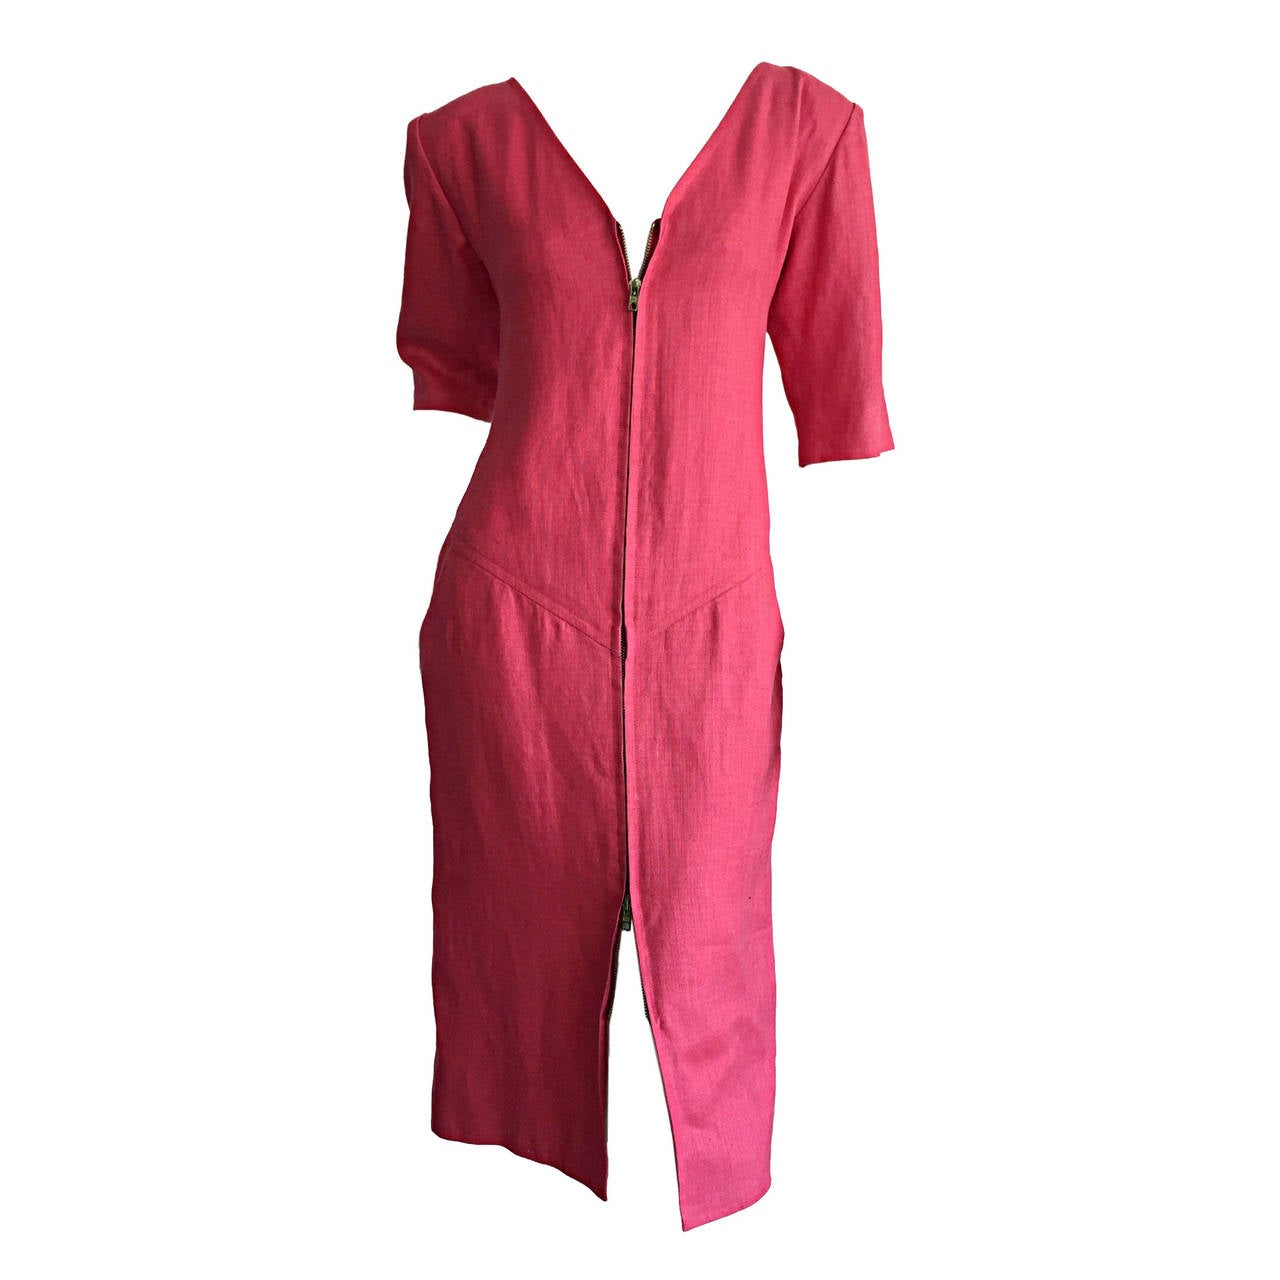 Yves Saint Laurent Rive Gauche Raspberry Pink Linen Vintage Corset Tunic Dress